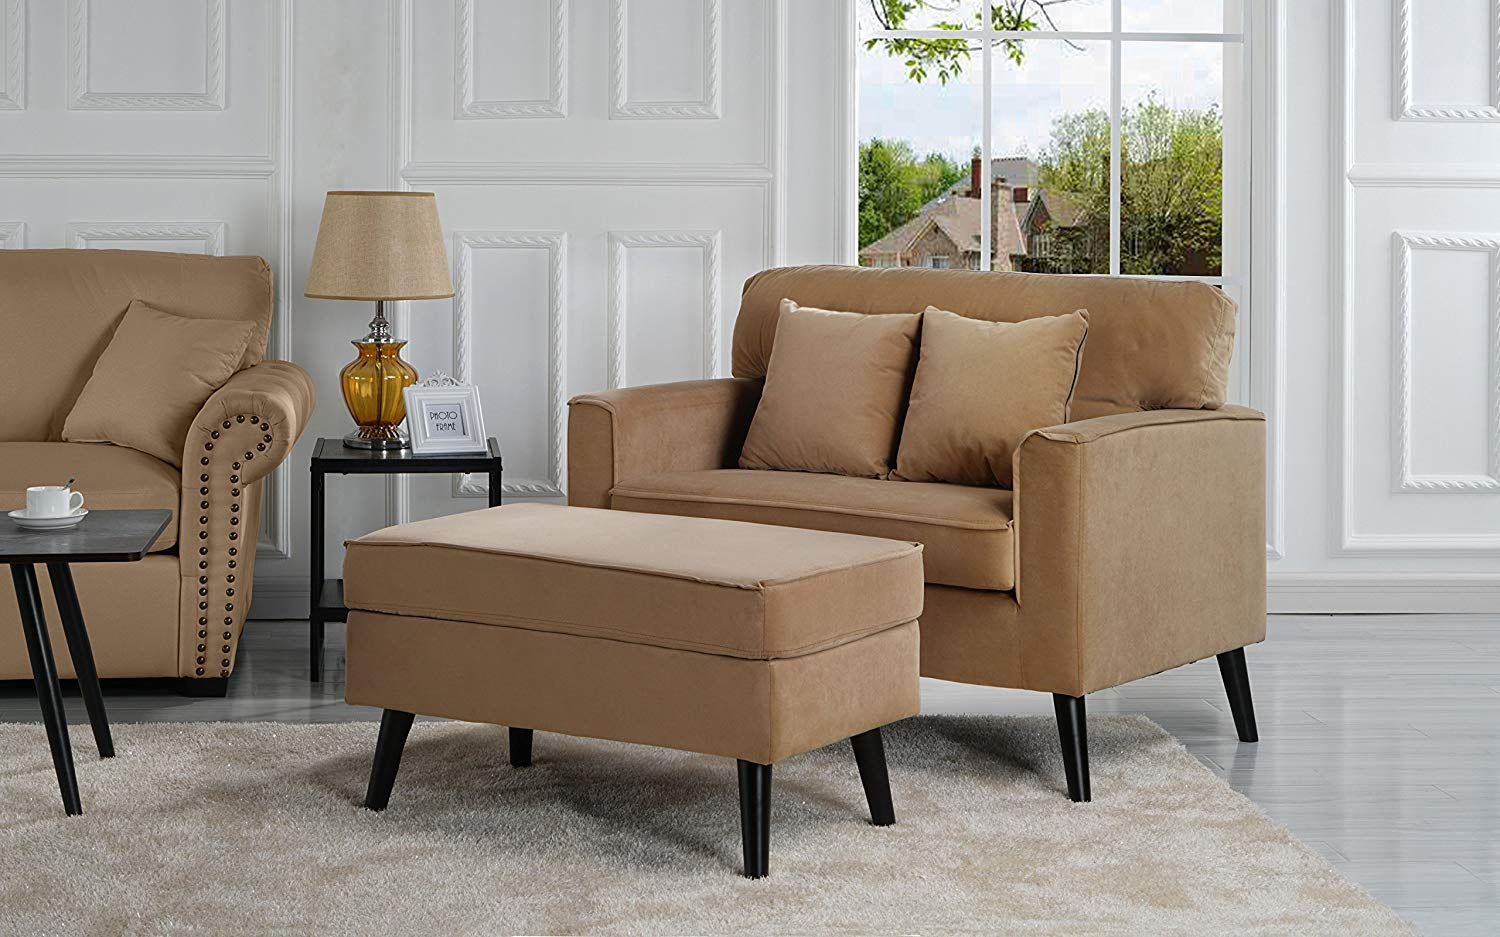 Casa Andrea Milano Modern Velvet Upholstered Lounge Accent Chair - Coffee Brown Single Seater with Storage Ottoman-Coffee Table, Lounger Chaise Chair for Living Room (Brown) by Casa Andrea Milano